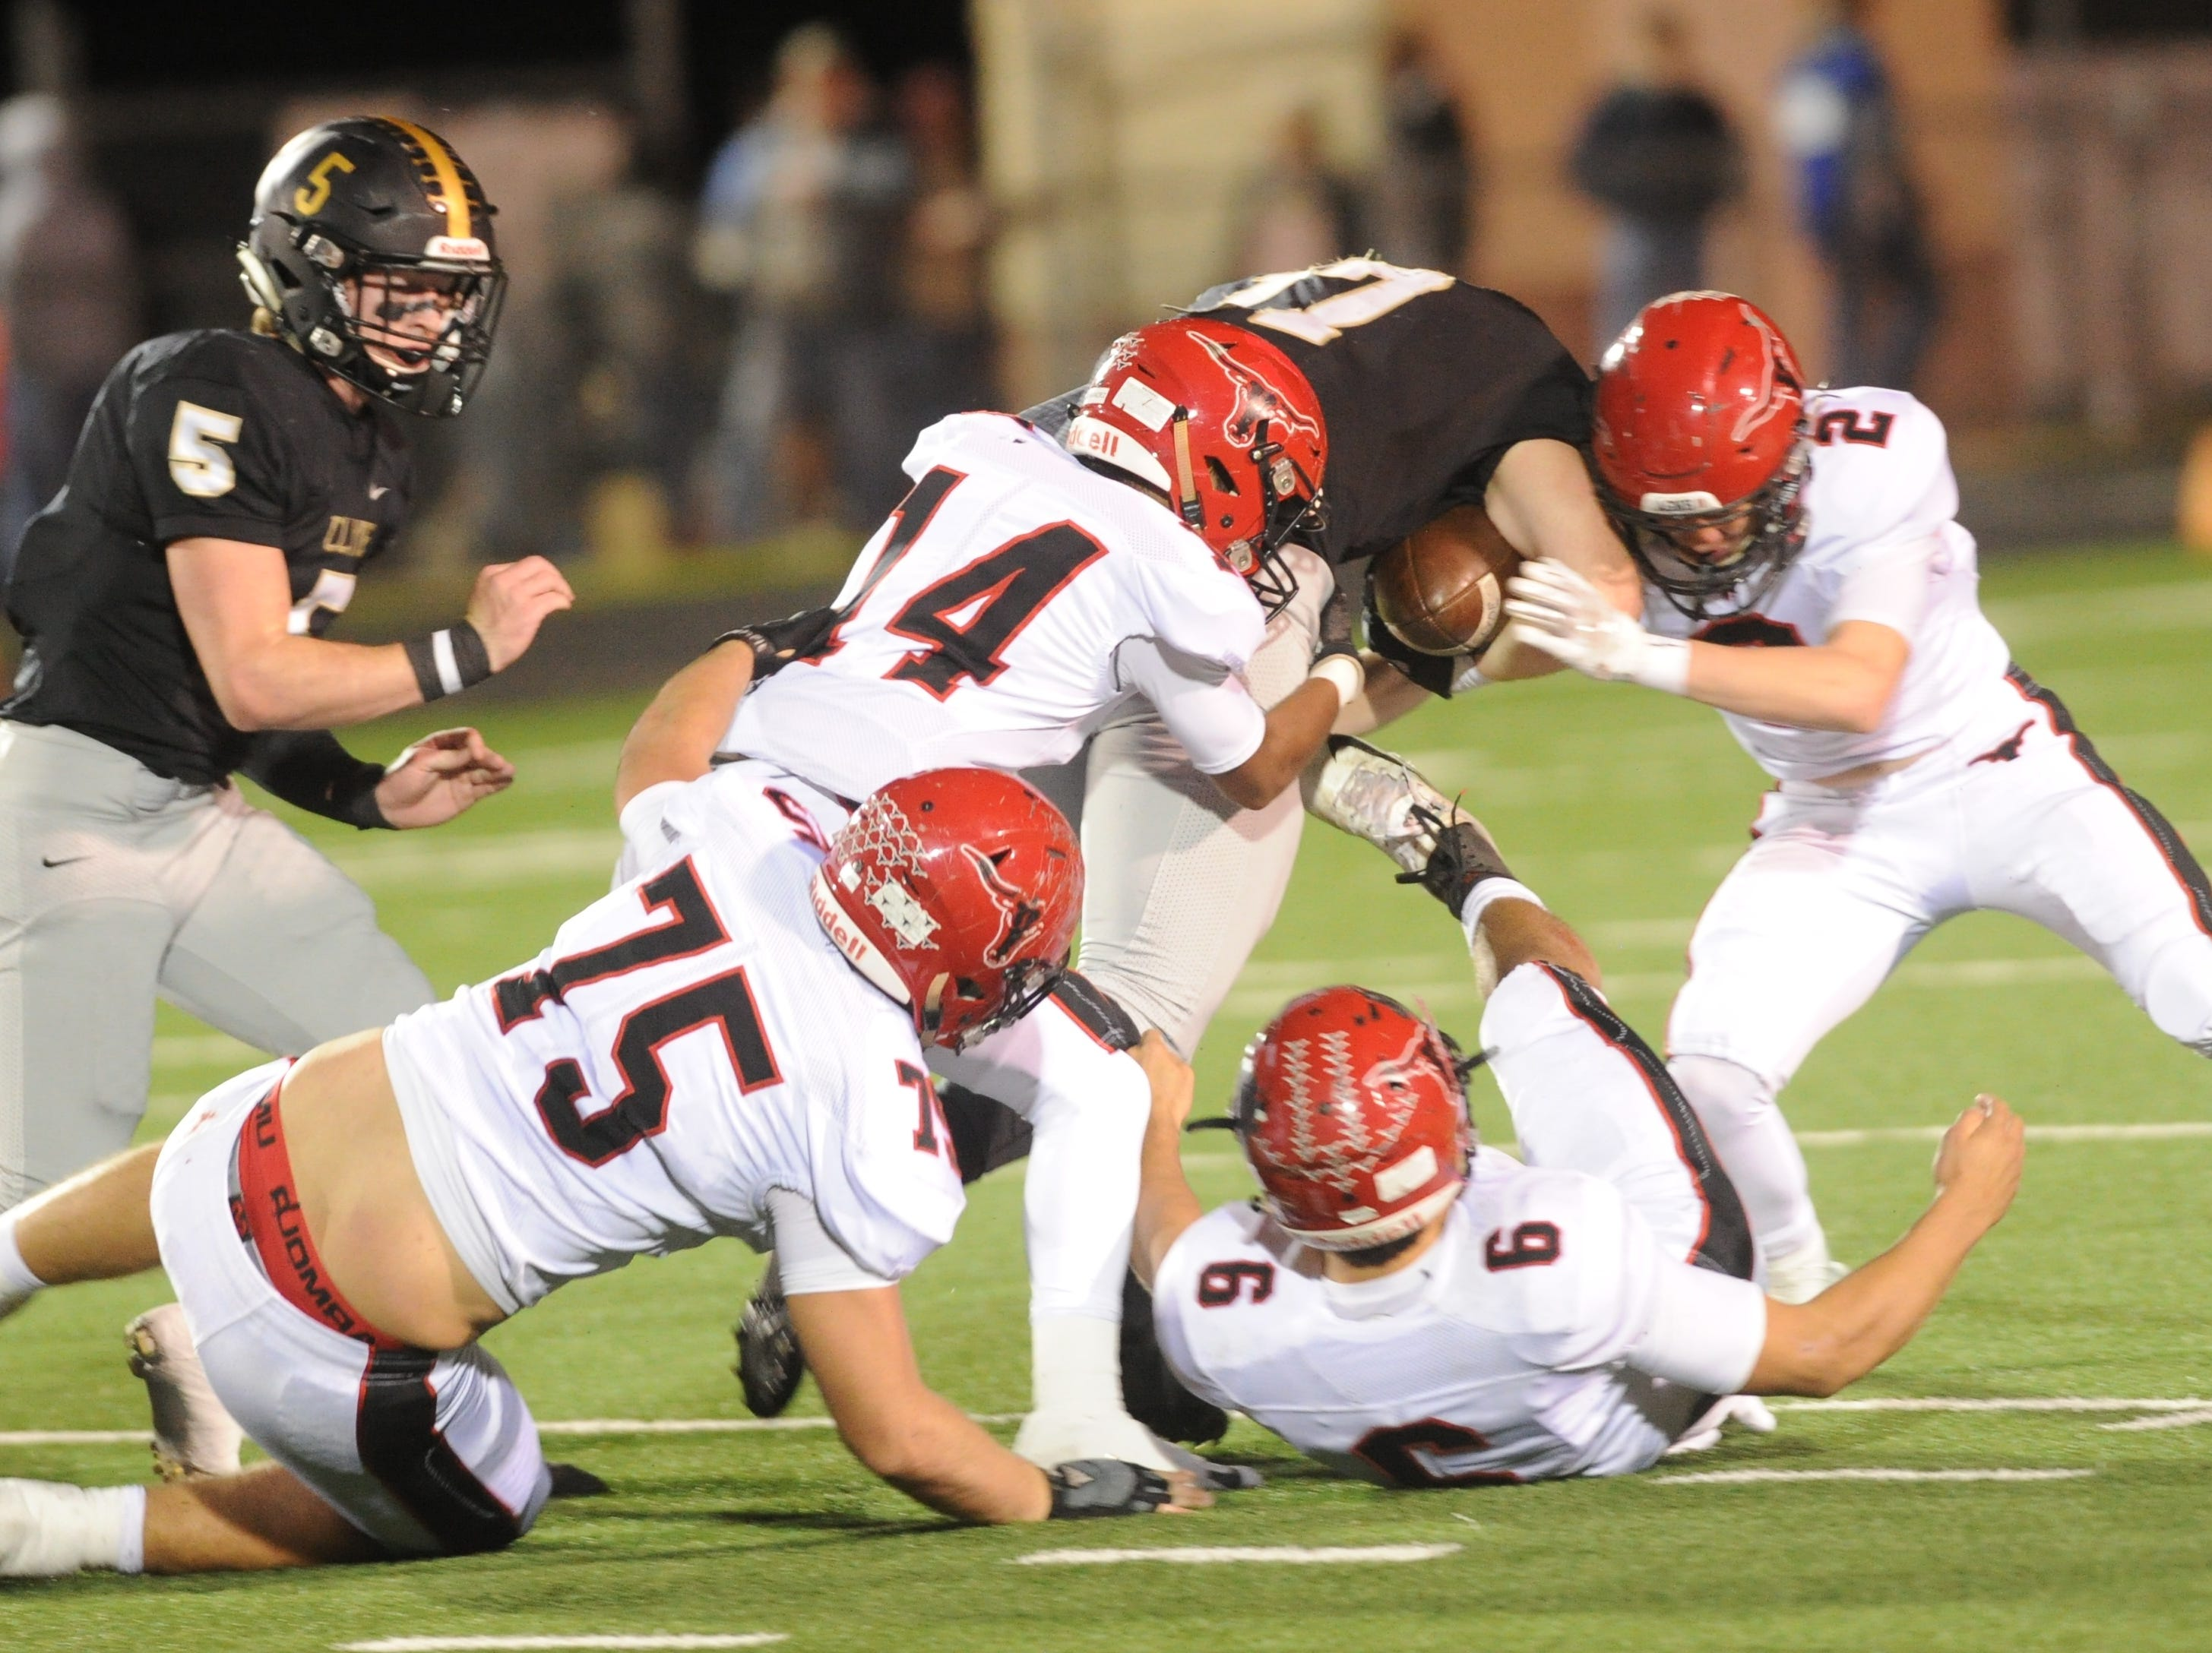 Eastland's Isaiah Hernandez (14), Zach Brown (2), Anthony Bonilla (6) and Dylan Green (75) try to bring down Clyde's Patyon Burton during the first half of their District 3-3A Division I game Friday, Nov. 2, 2018, at Clyde. Eastland rallied from a 14-7 halftime deficit to beat the Bulldogs 28-14.